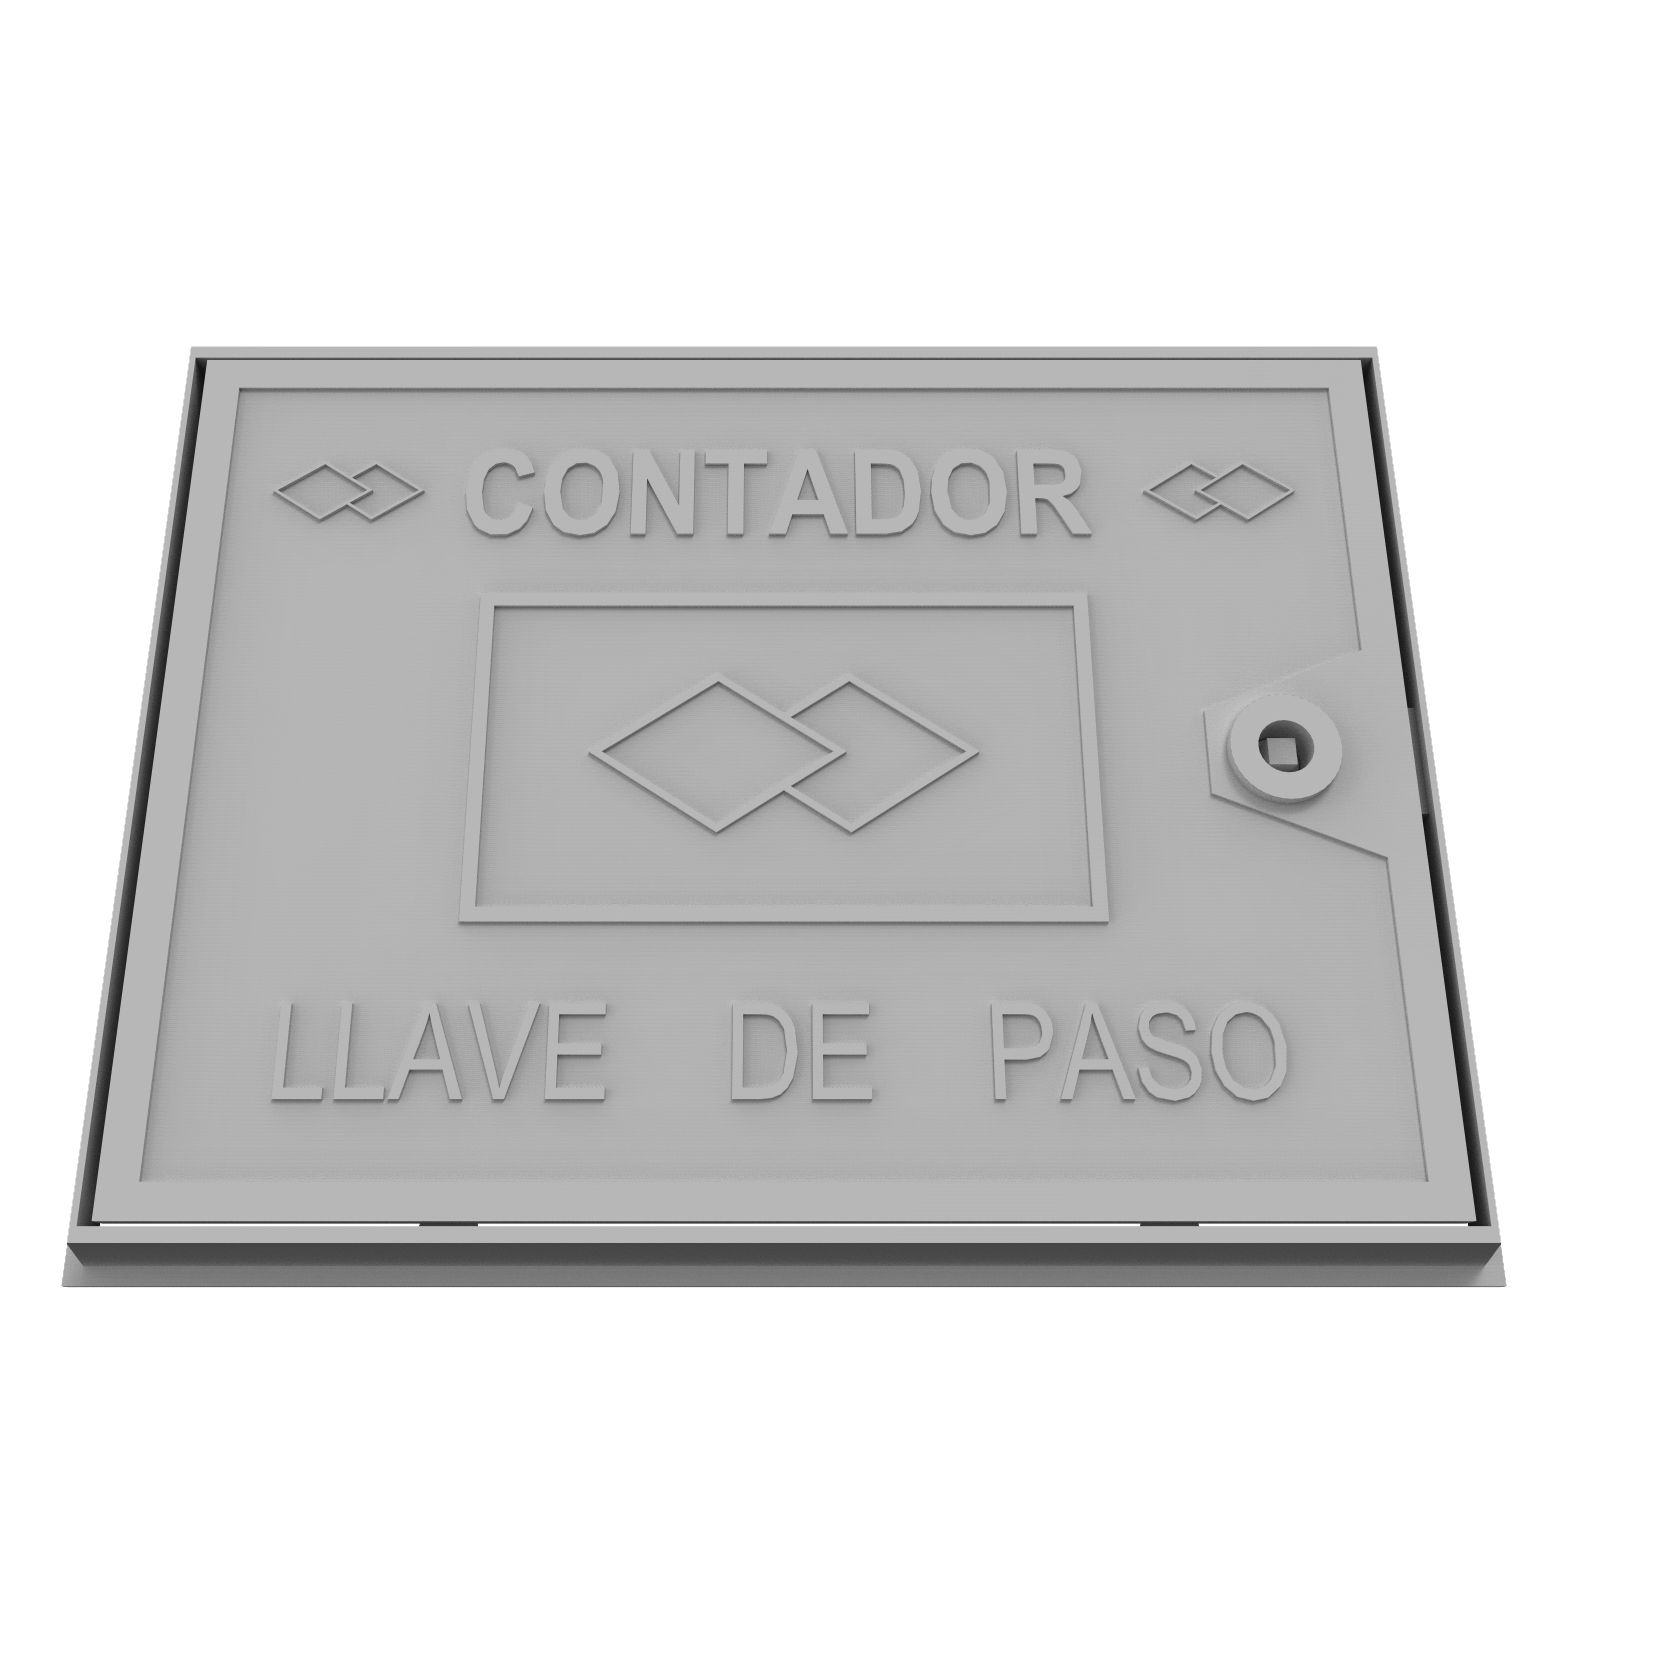 Aluminium wall trap door. Stopcock counter B-41P